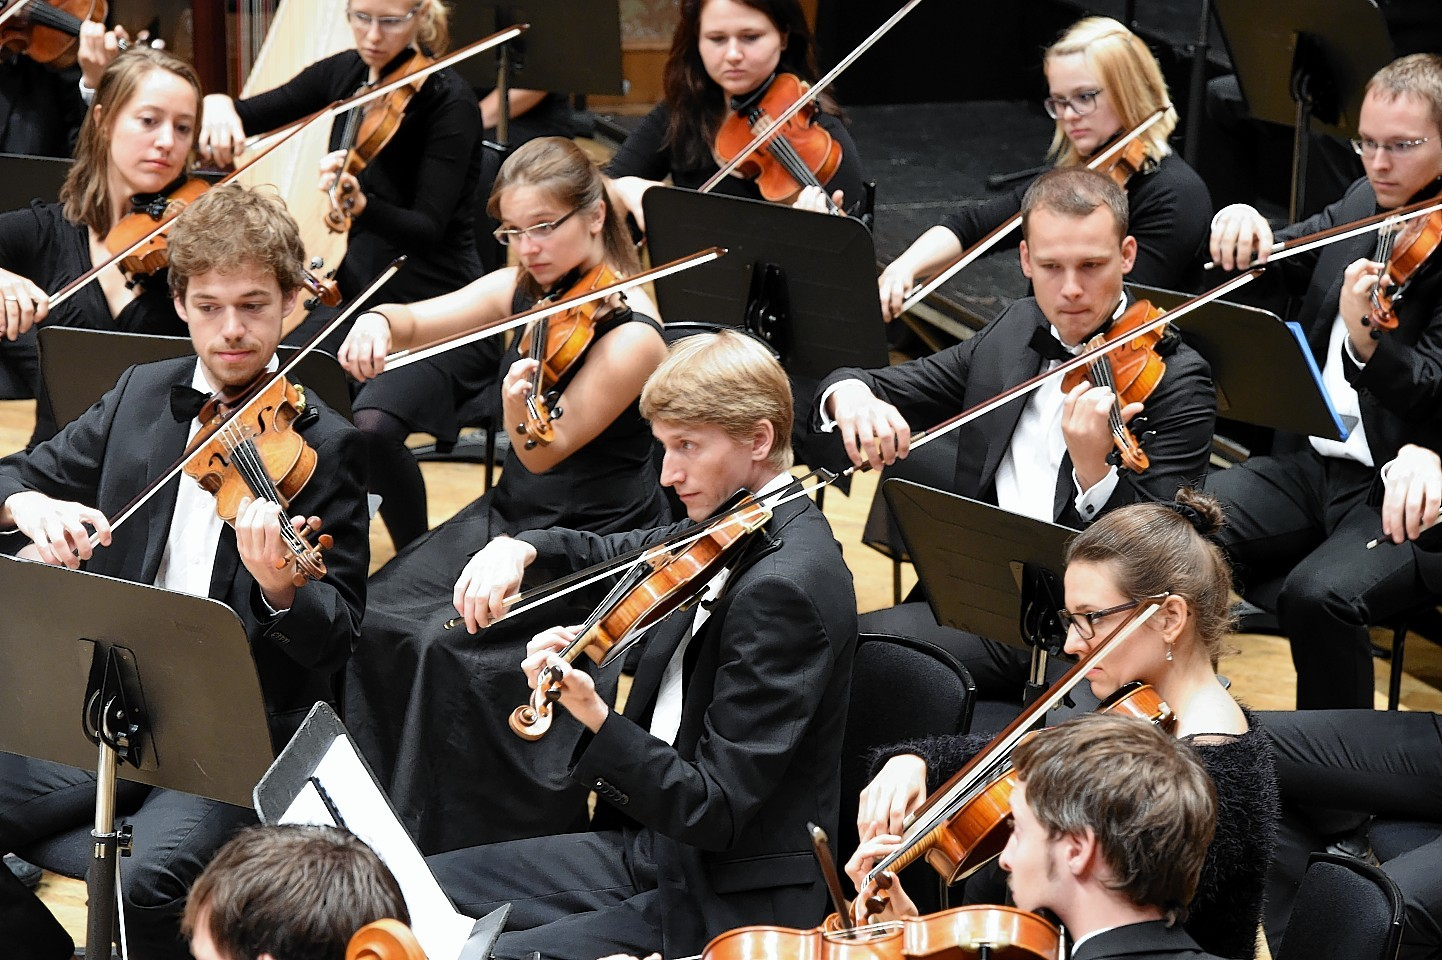 The Aberdeen International Youth Festival opening ceremony at Music Hall, Aberdeen. In the picture is the Zurich Academic orchestra.